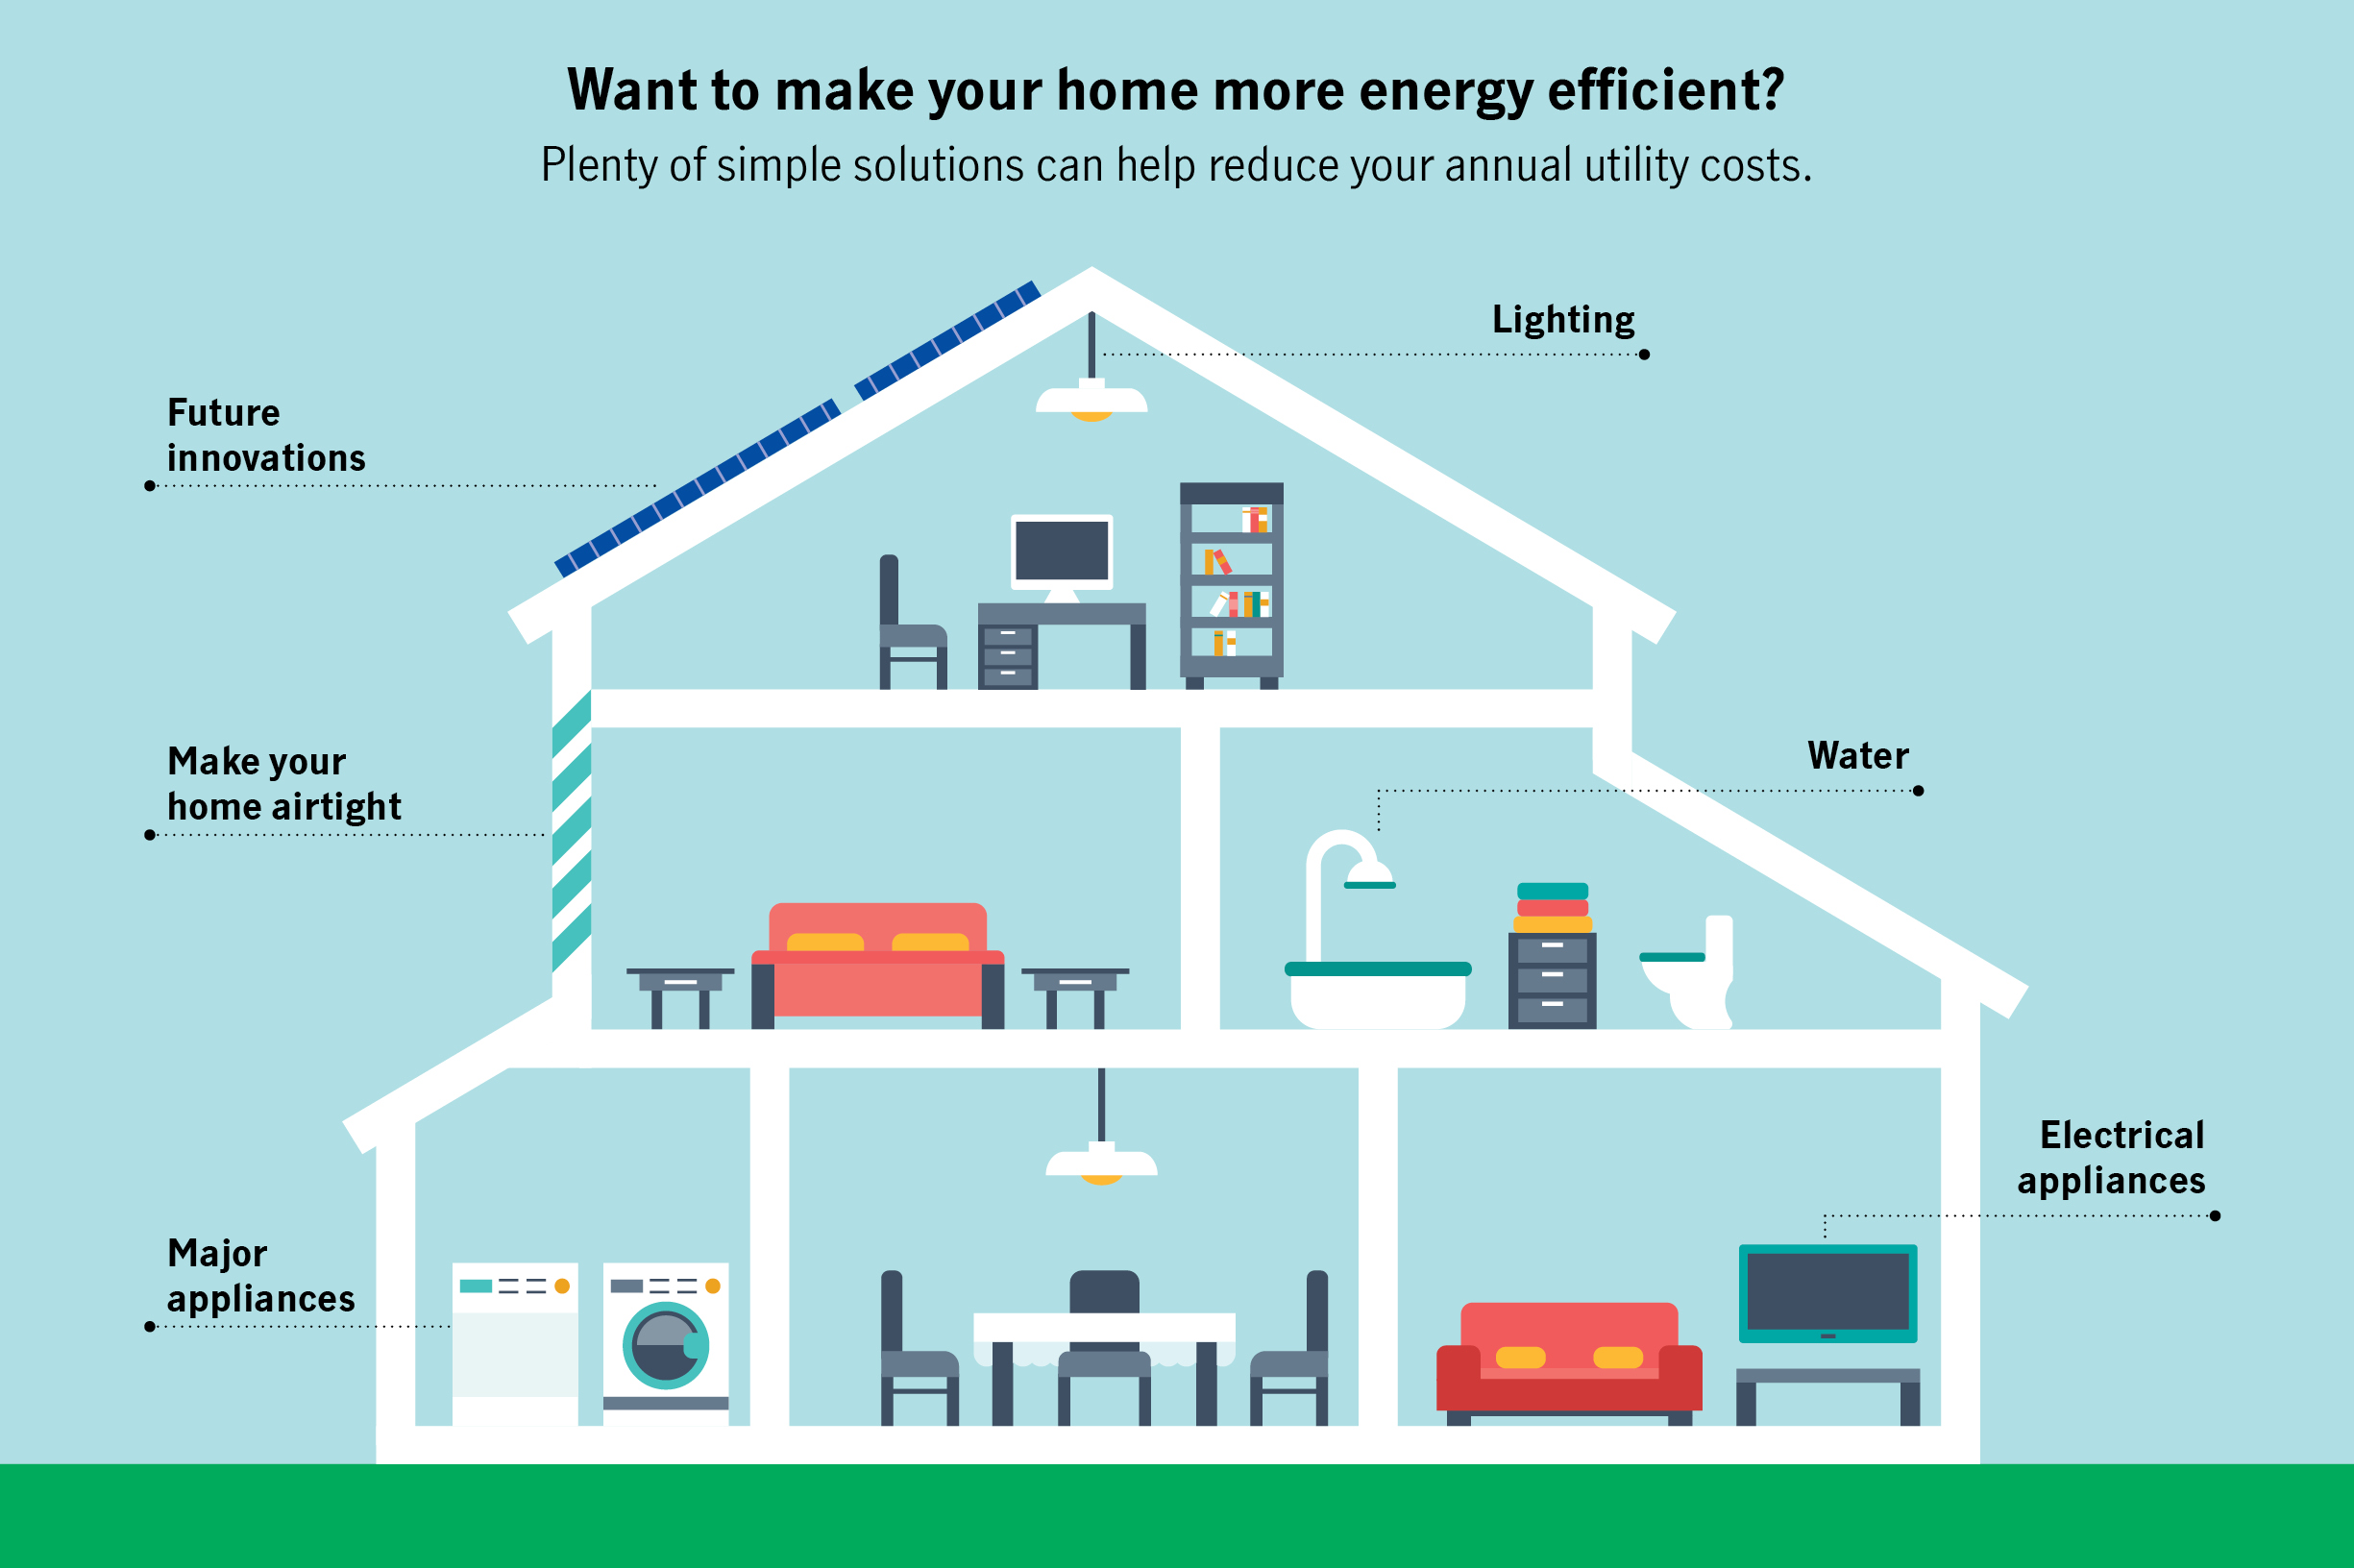 Want to make your home more energy efficient?  Plenty of simple solutions can help reduce your annual utility costs.